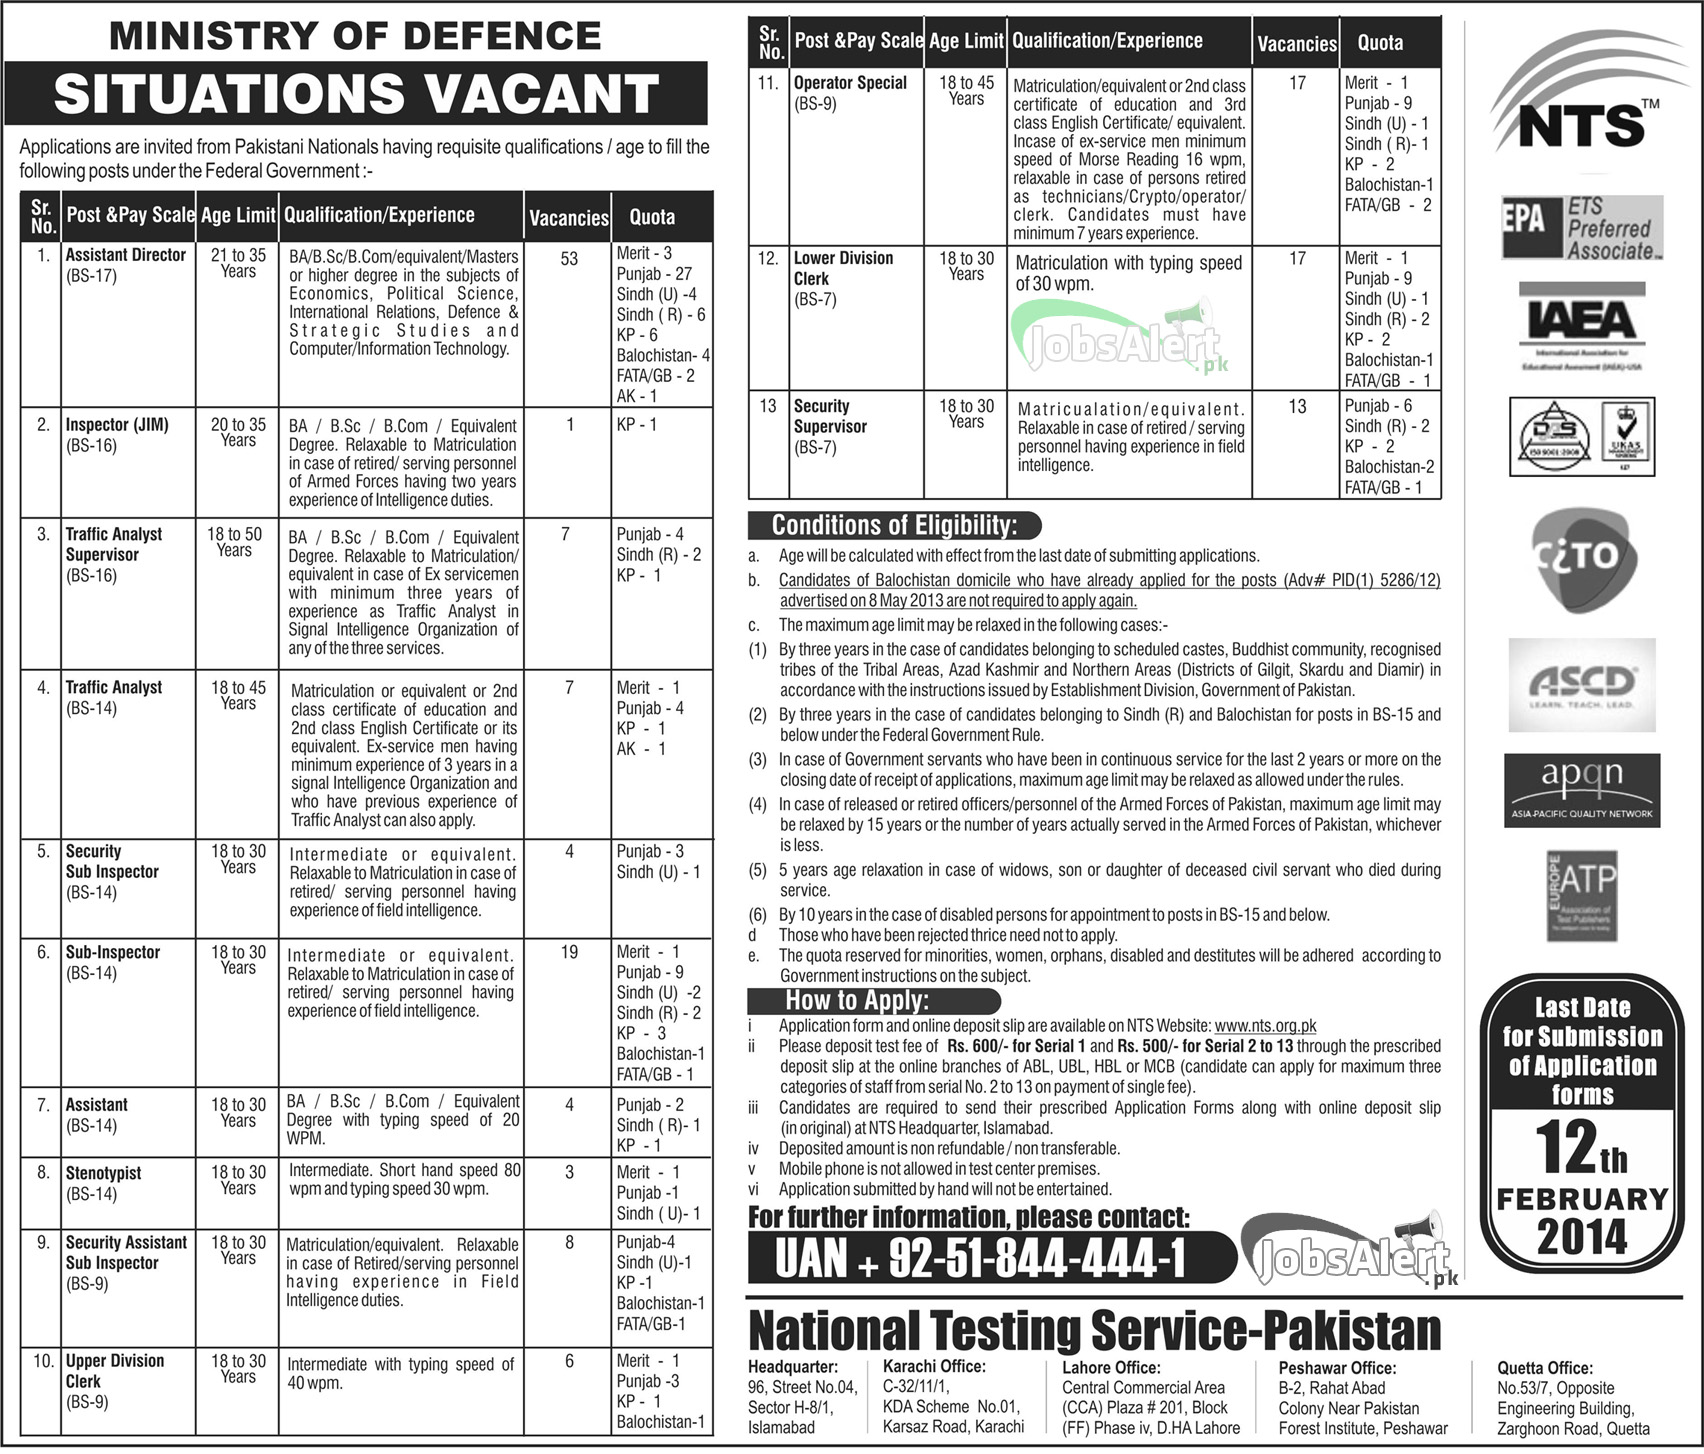 NTS Ministry of Defence NTS Jobs 2014 Govt. Of Pakistan